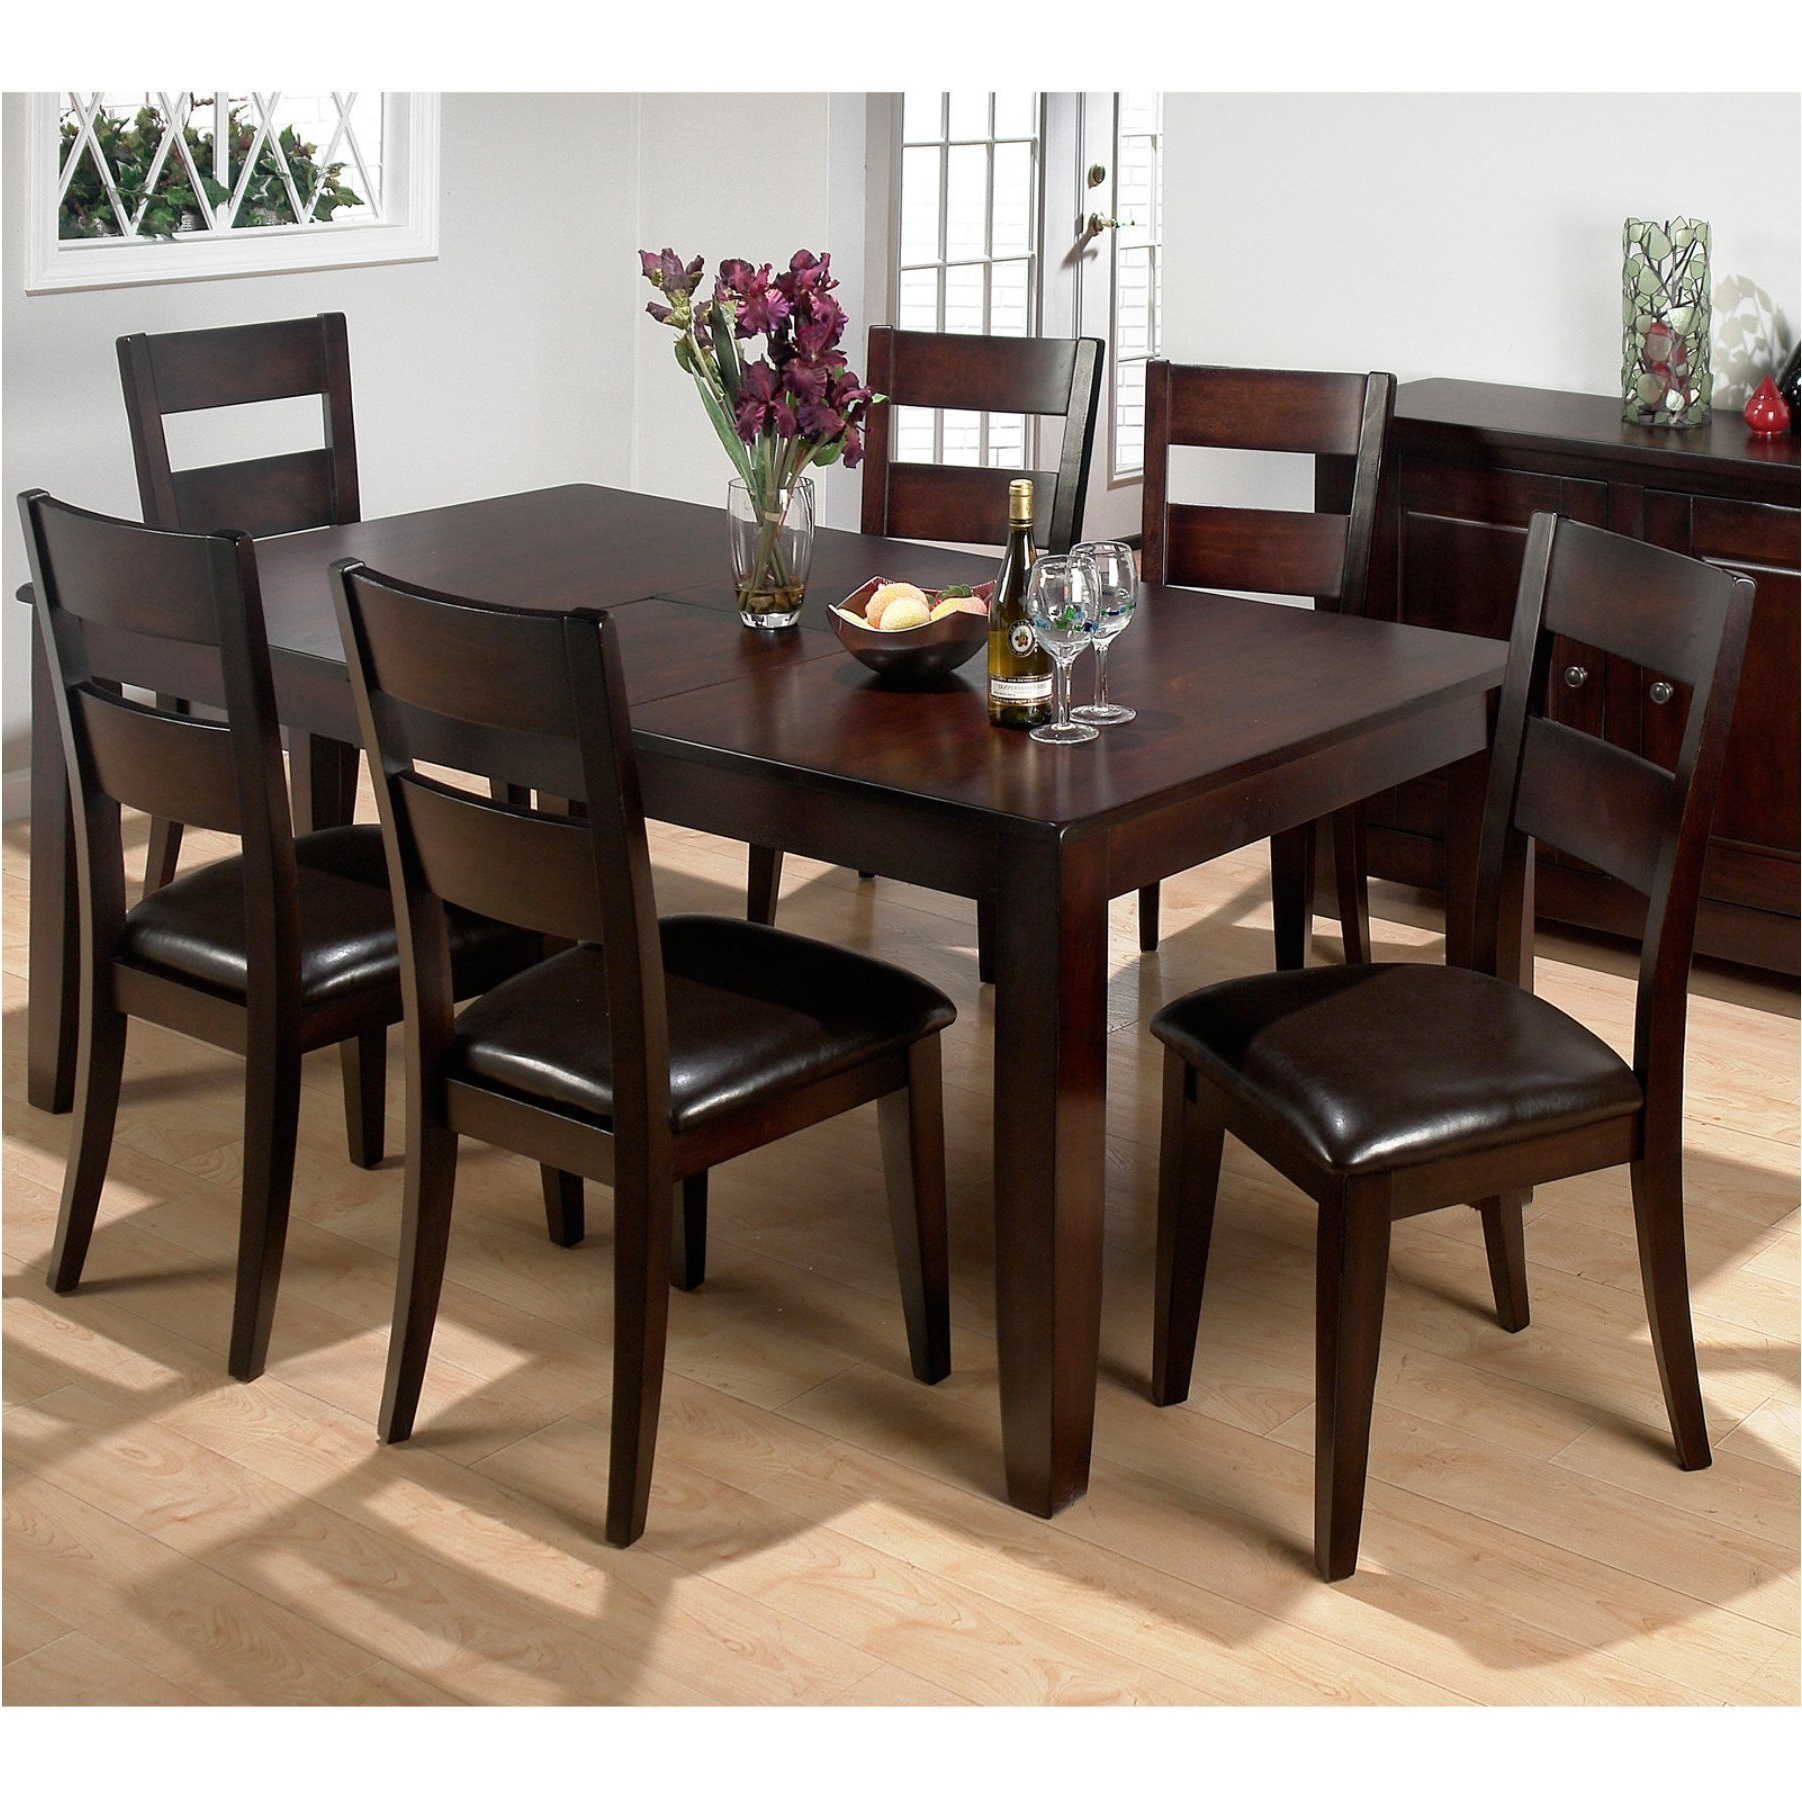 Newest Cheap Dining Sets Regarding Breathtaking Hampshire Oak Dining Set Dining Furniture B – Cheap (View 11 of 25)